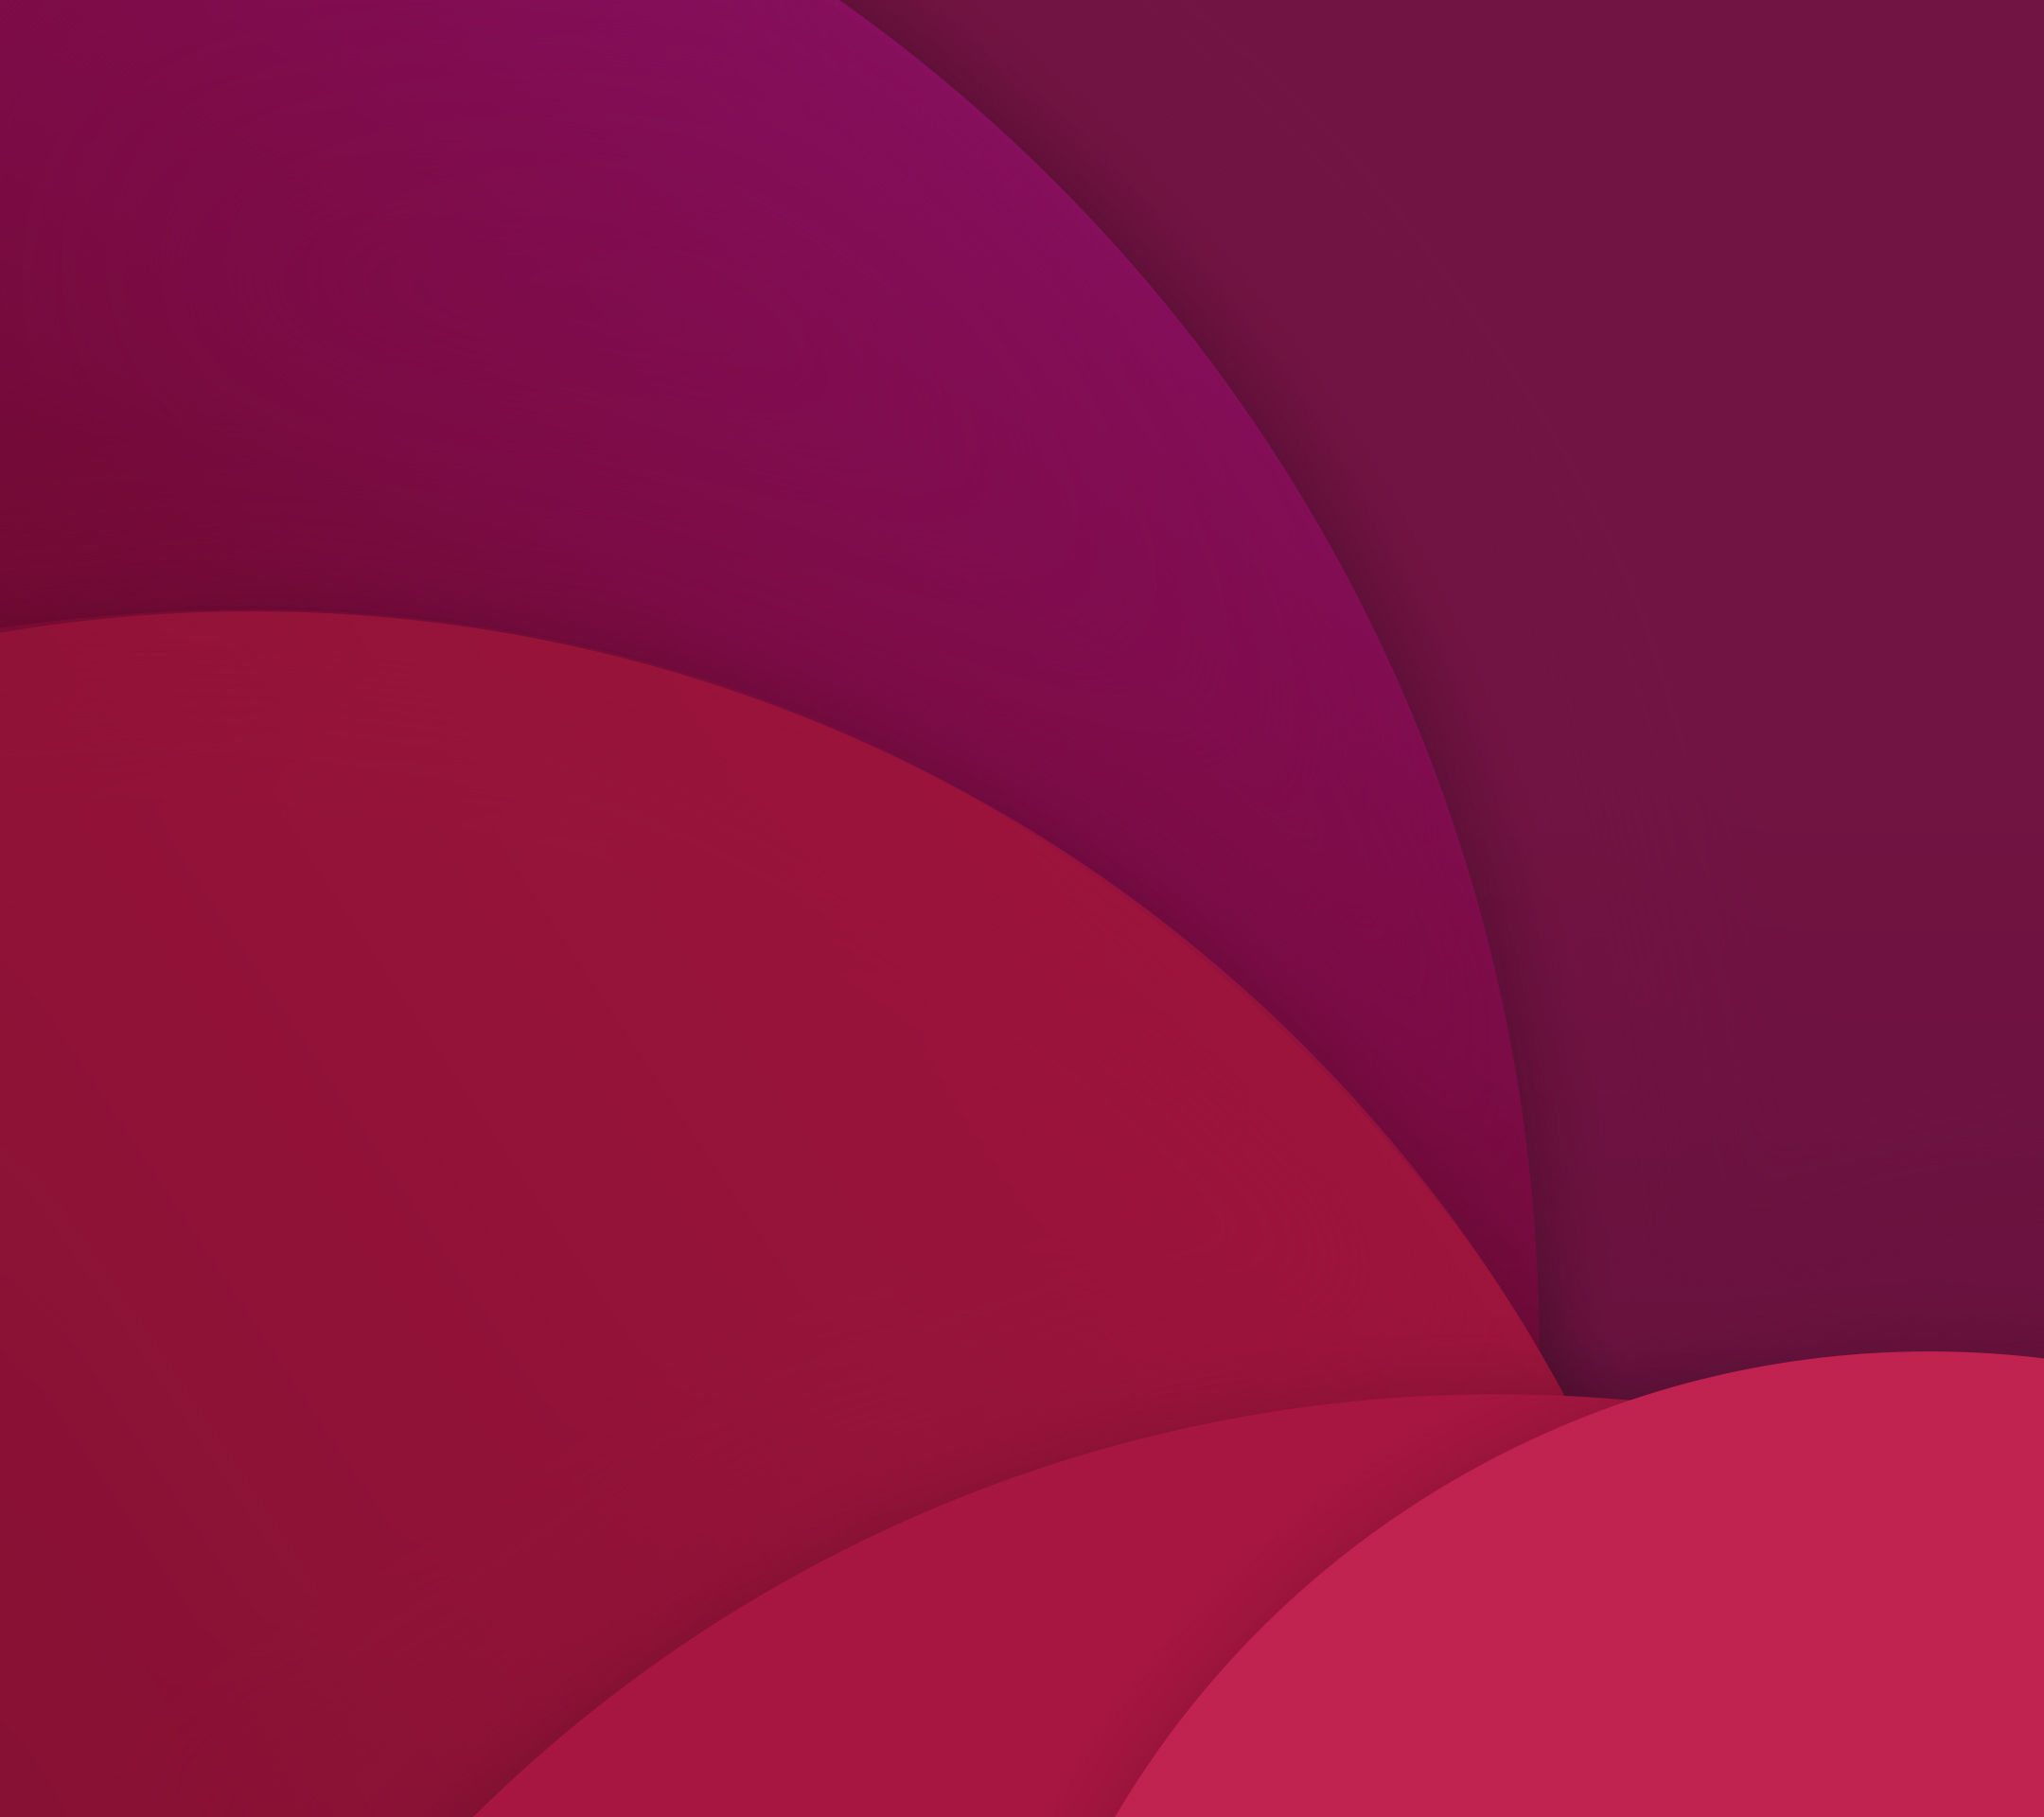 LG-G-Flex-2-full-res-wallpapers (6)